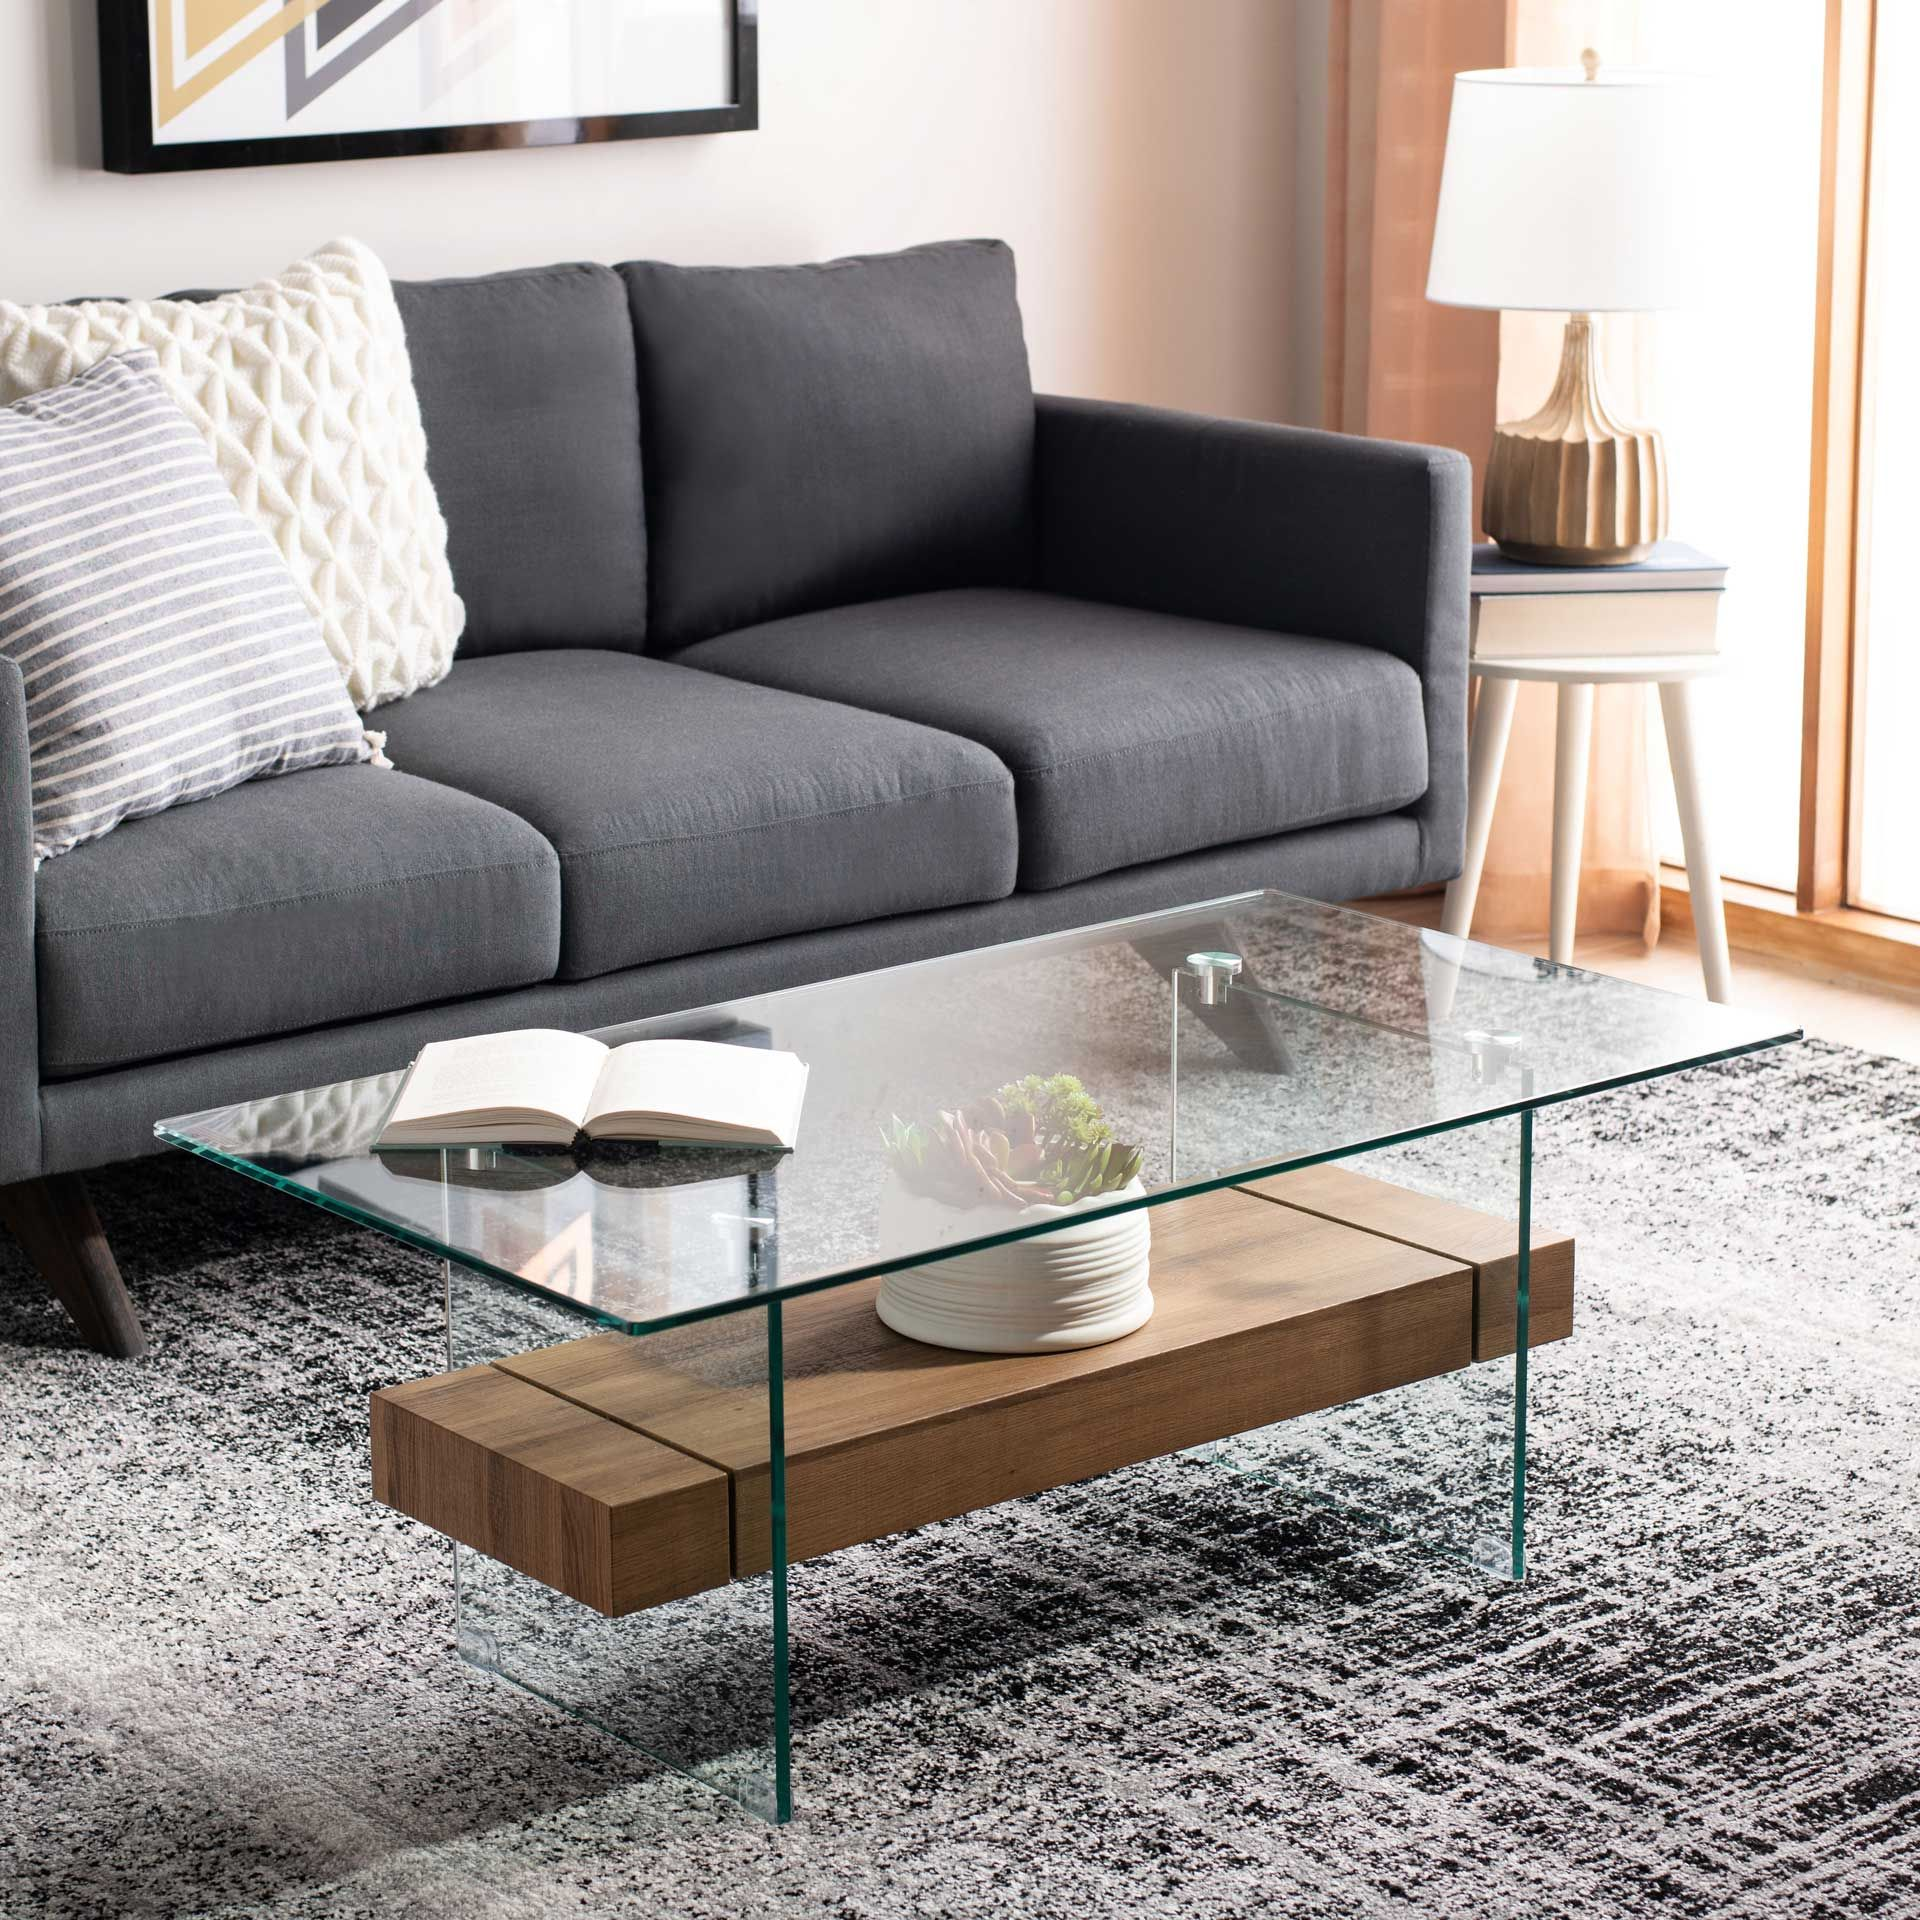 Karis Glass Coffee Table Glass Natural Brown In 2021 Coffee Table Modern Glass Coffee Table Glass Coffee Table [ 1920 x 1920 Pixel ]